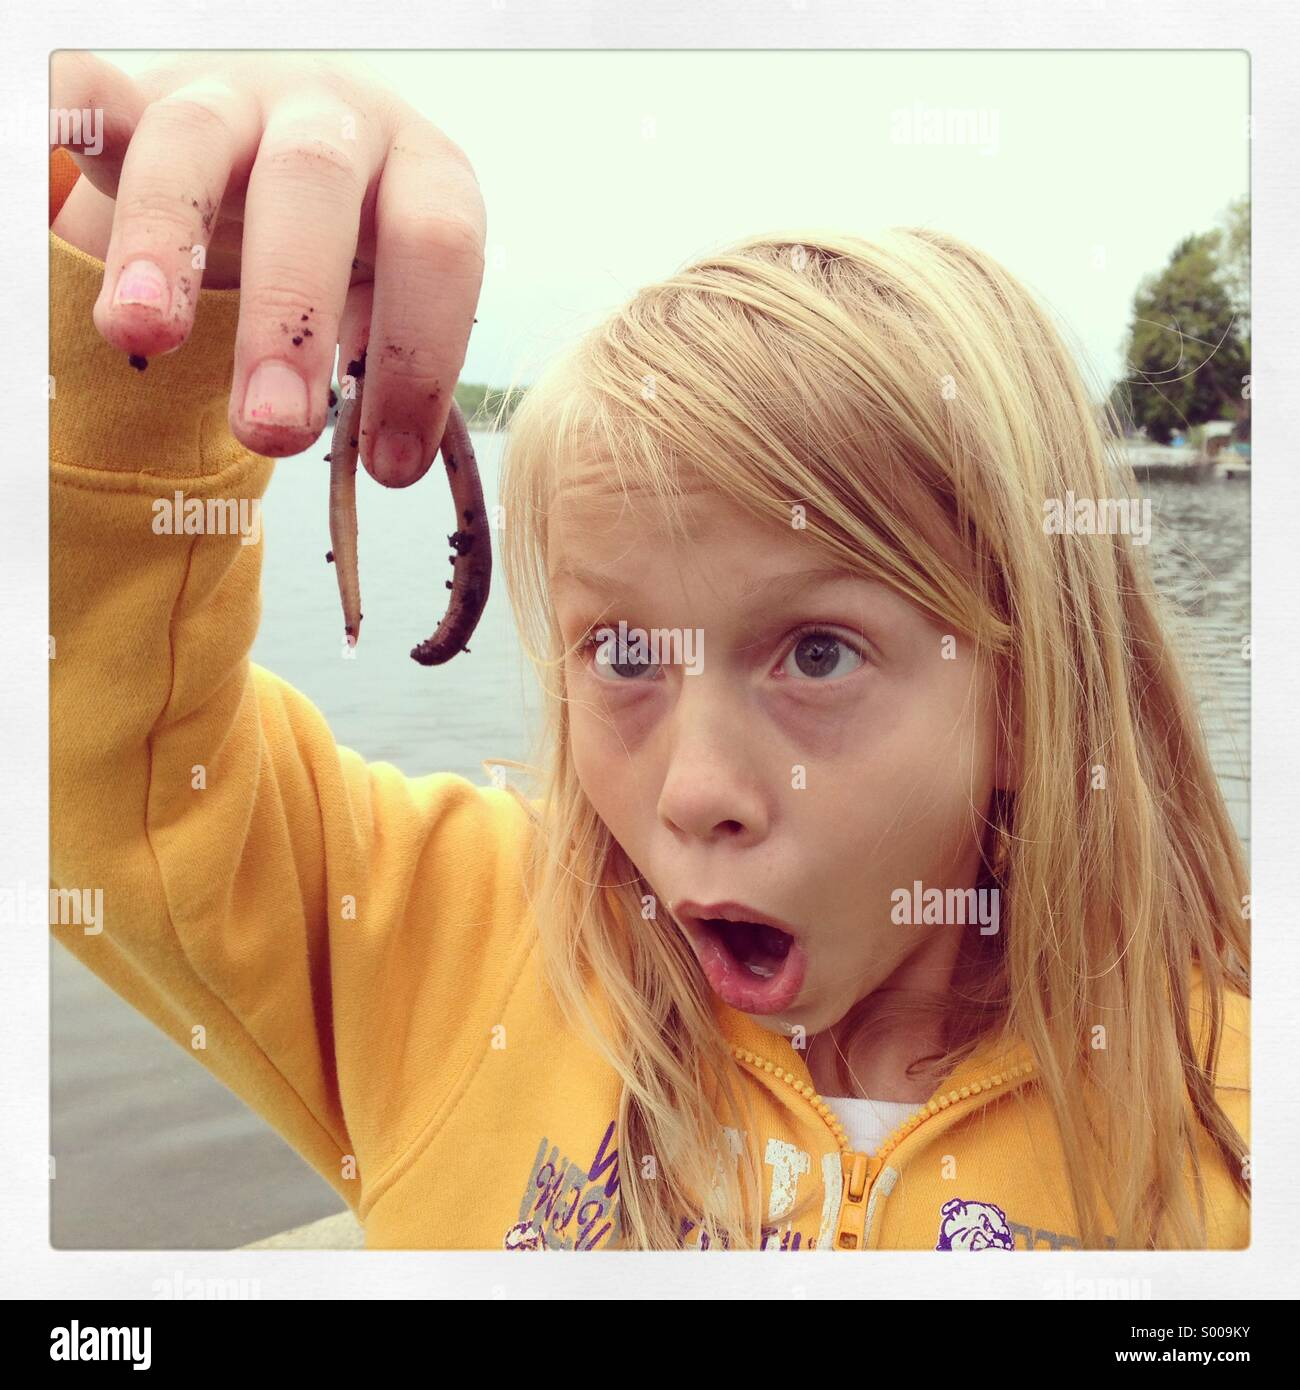 A girl's eyes light up while looking at a squirmy crawly worn. - Stock Image